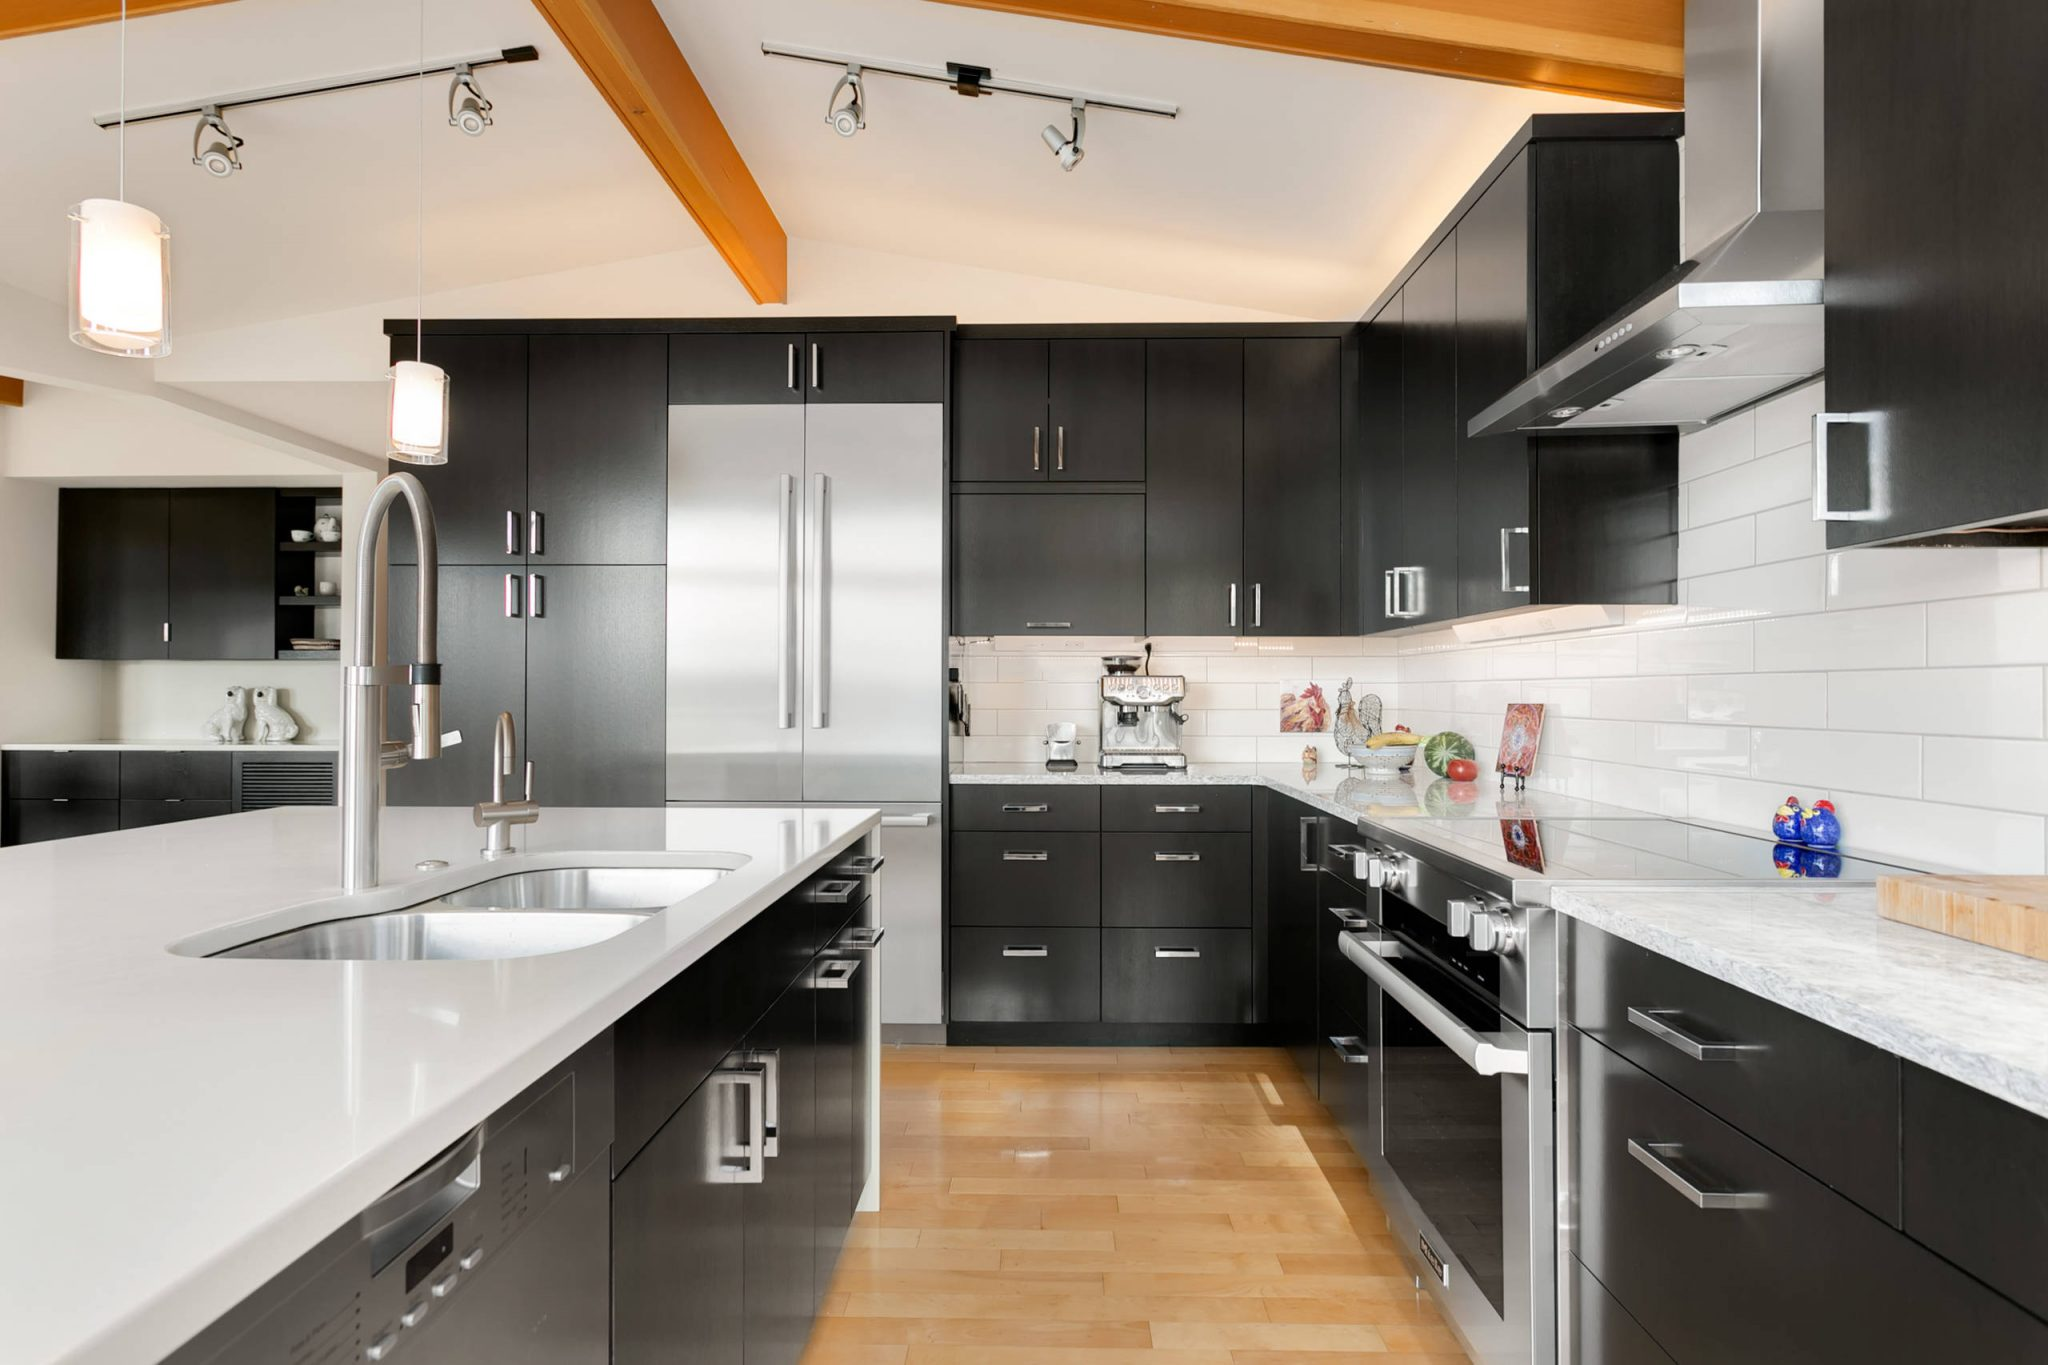 black-and-white-kitchen-cabinets-kitchen-remodel-home-rennovation-project